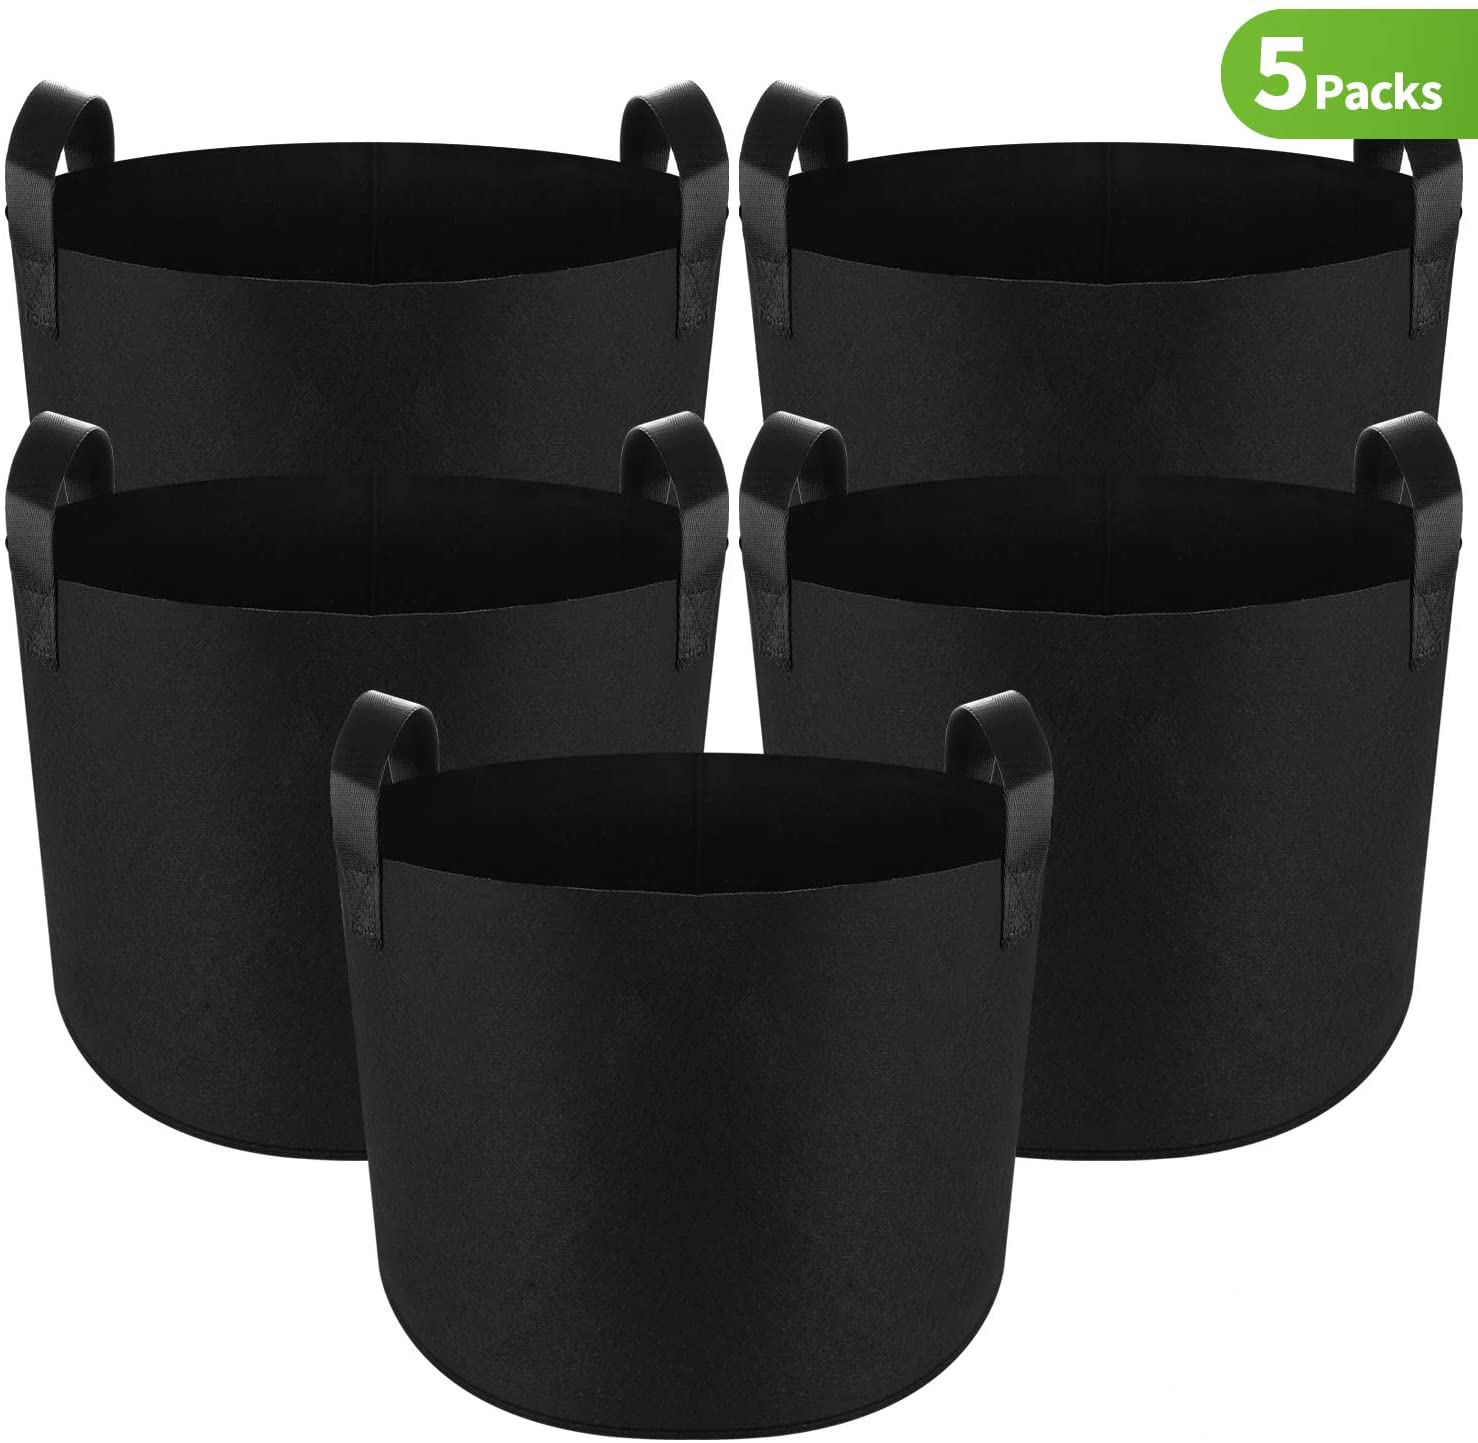 5-Pack Plant Grow Bag 20 Gallon Fabric Pots with Reinforced Handles and Bottom Smart Potato Container Gardening Vegetable Planter